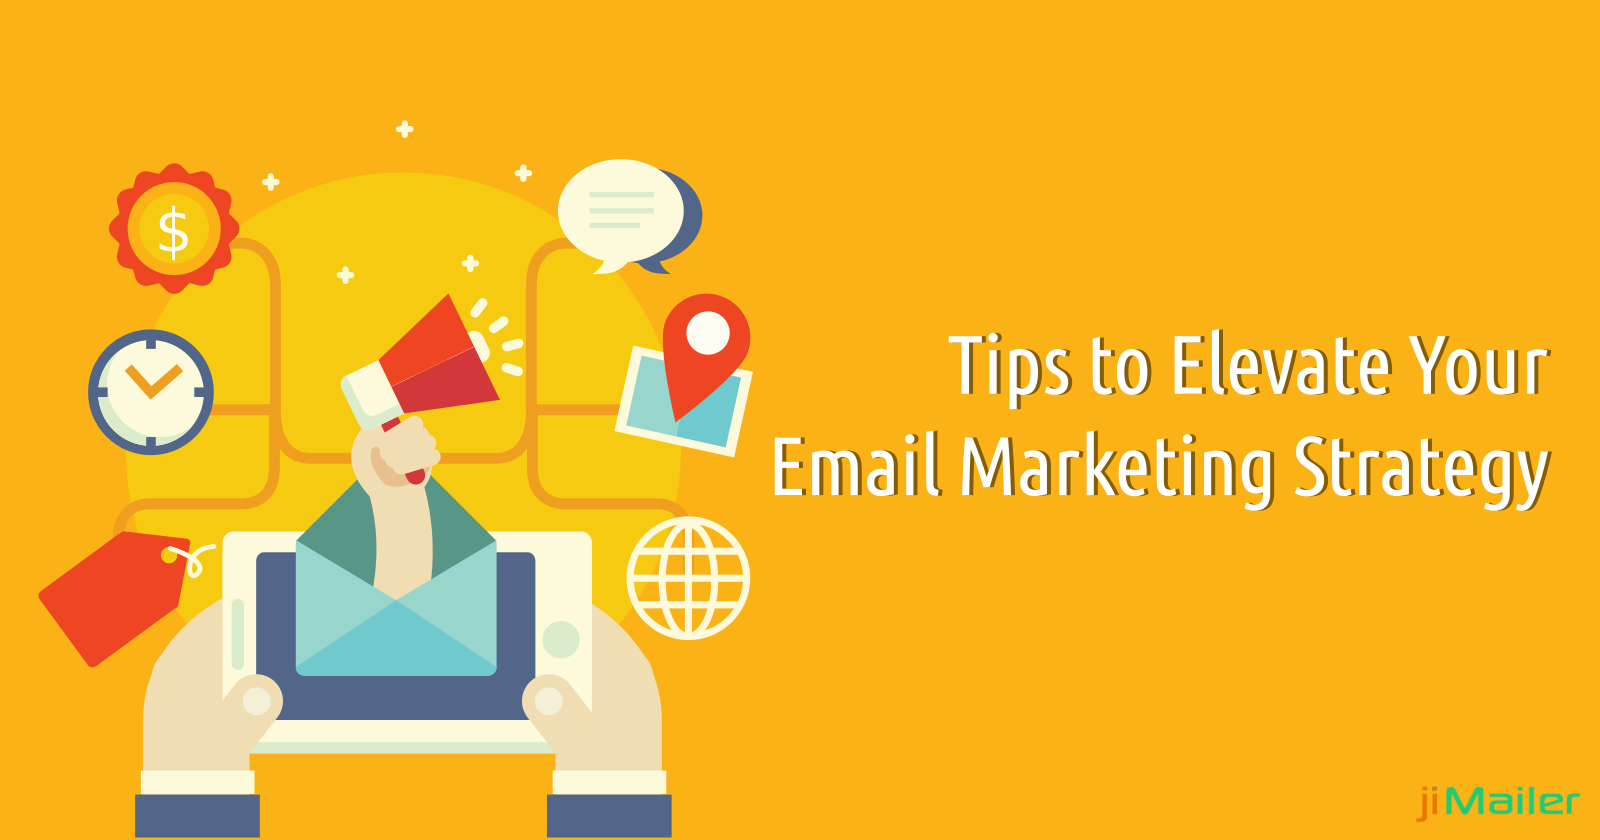 Tips to Elevate Your Email Marketing Strategy